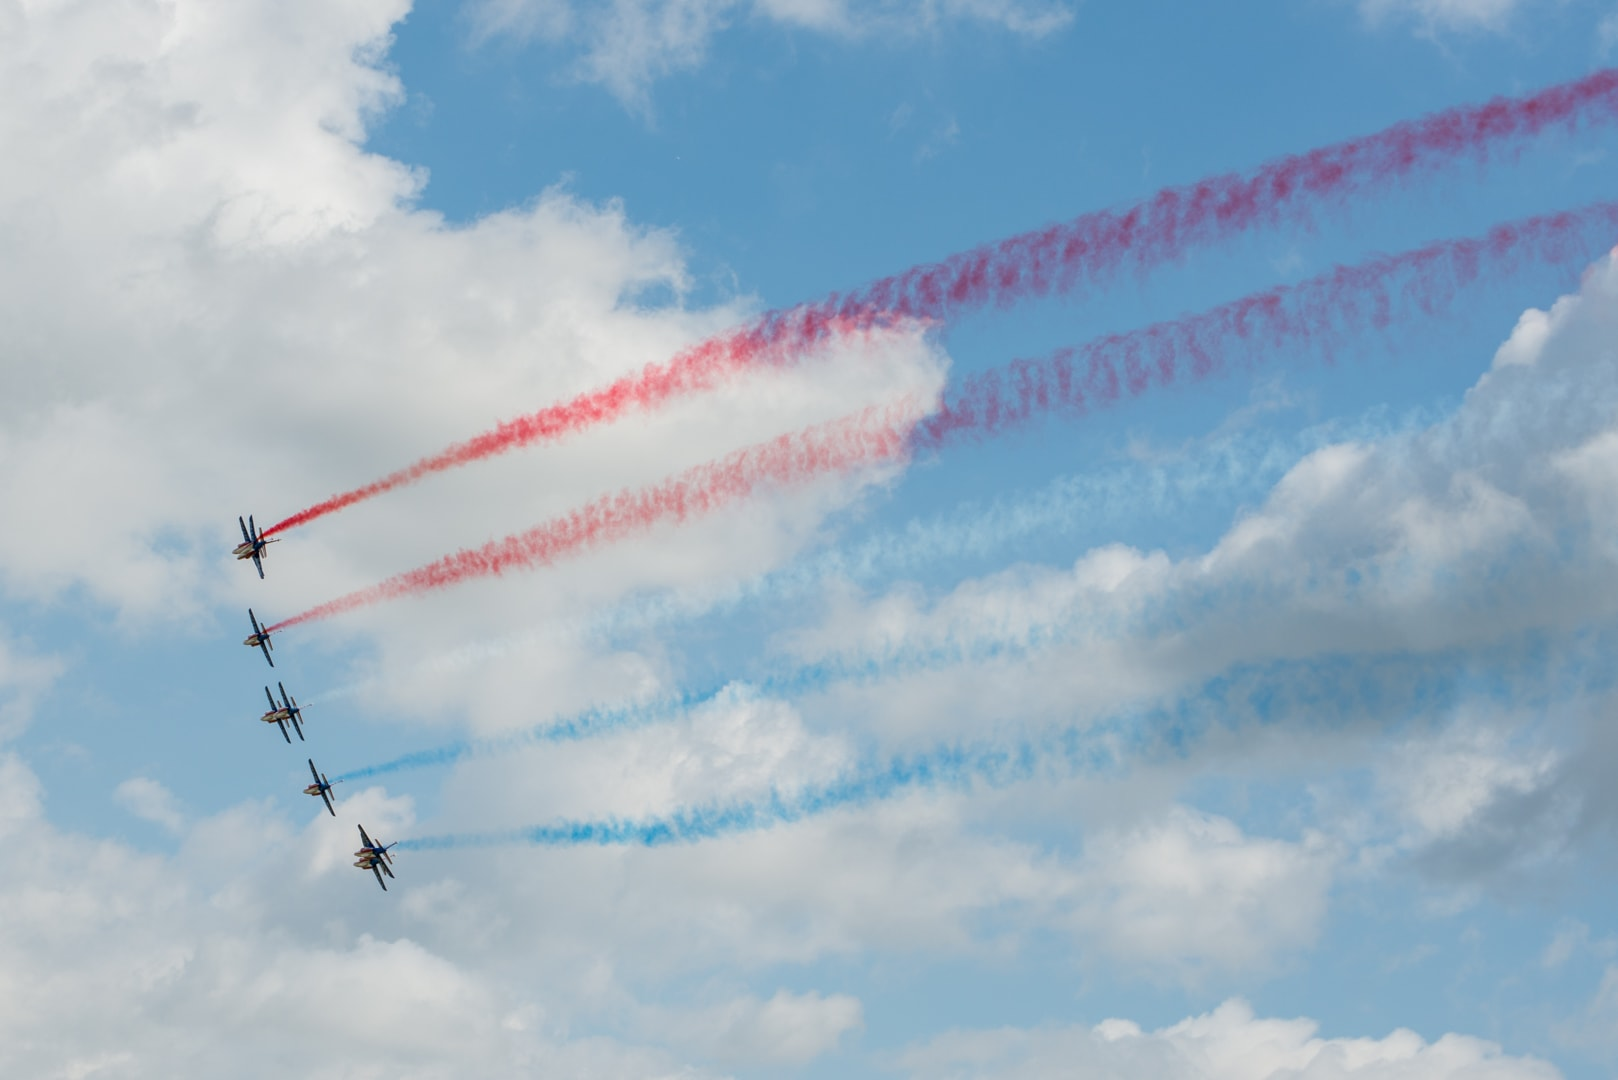 Photo de la patrouille de france n°28